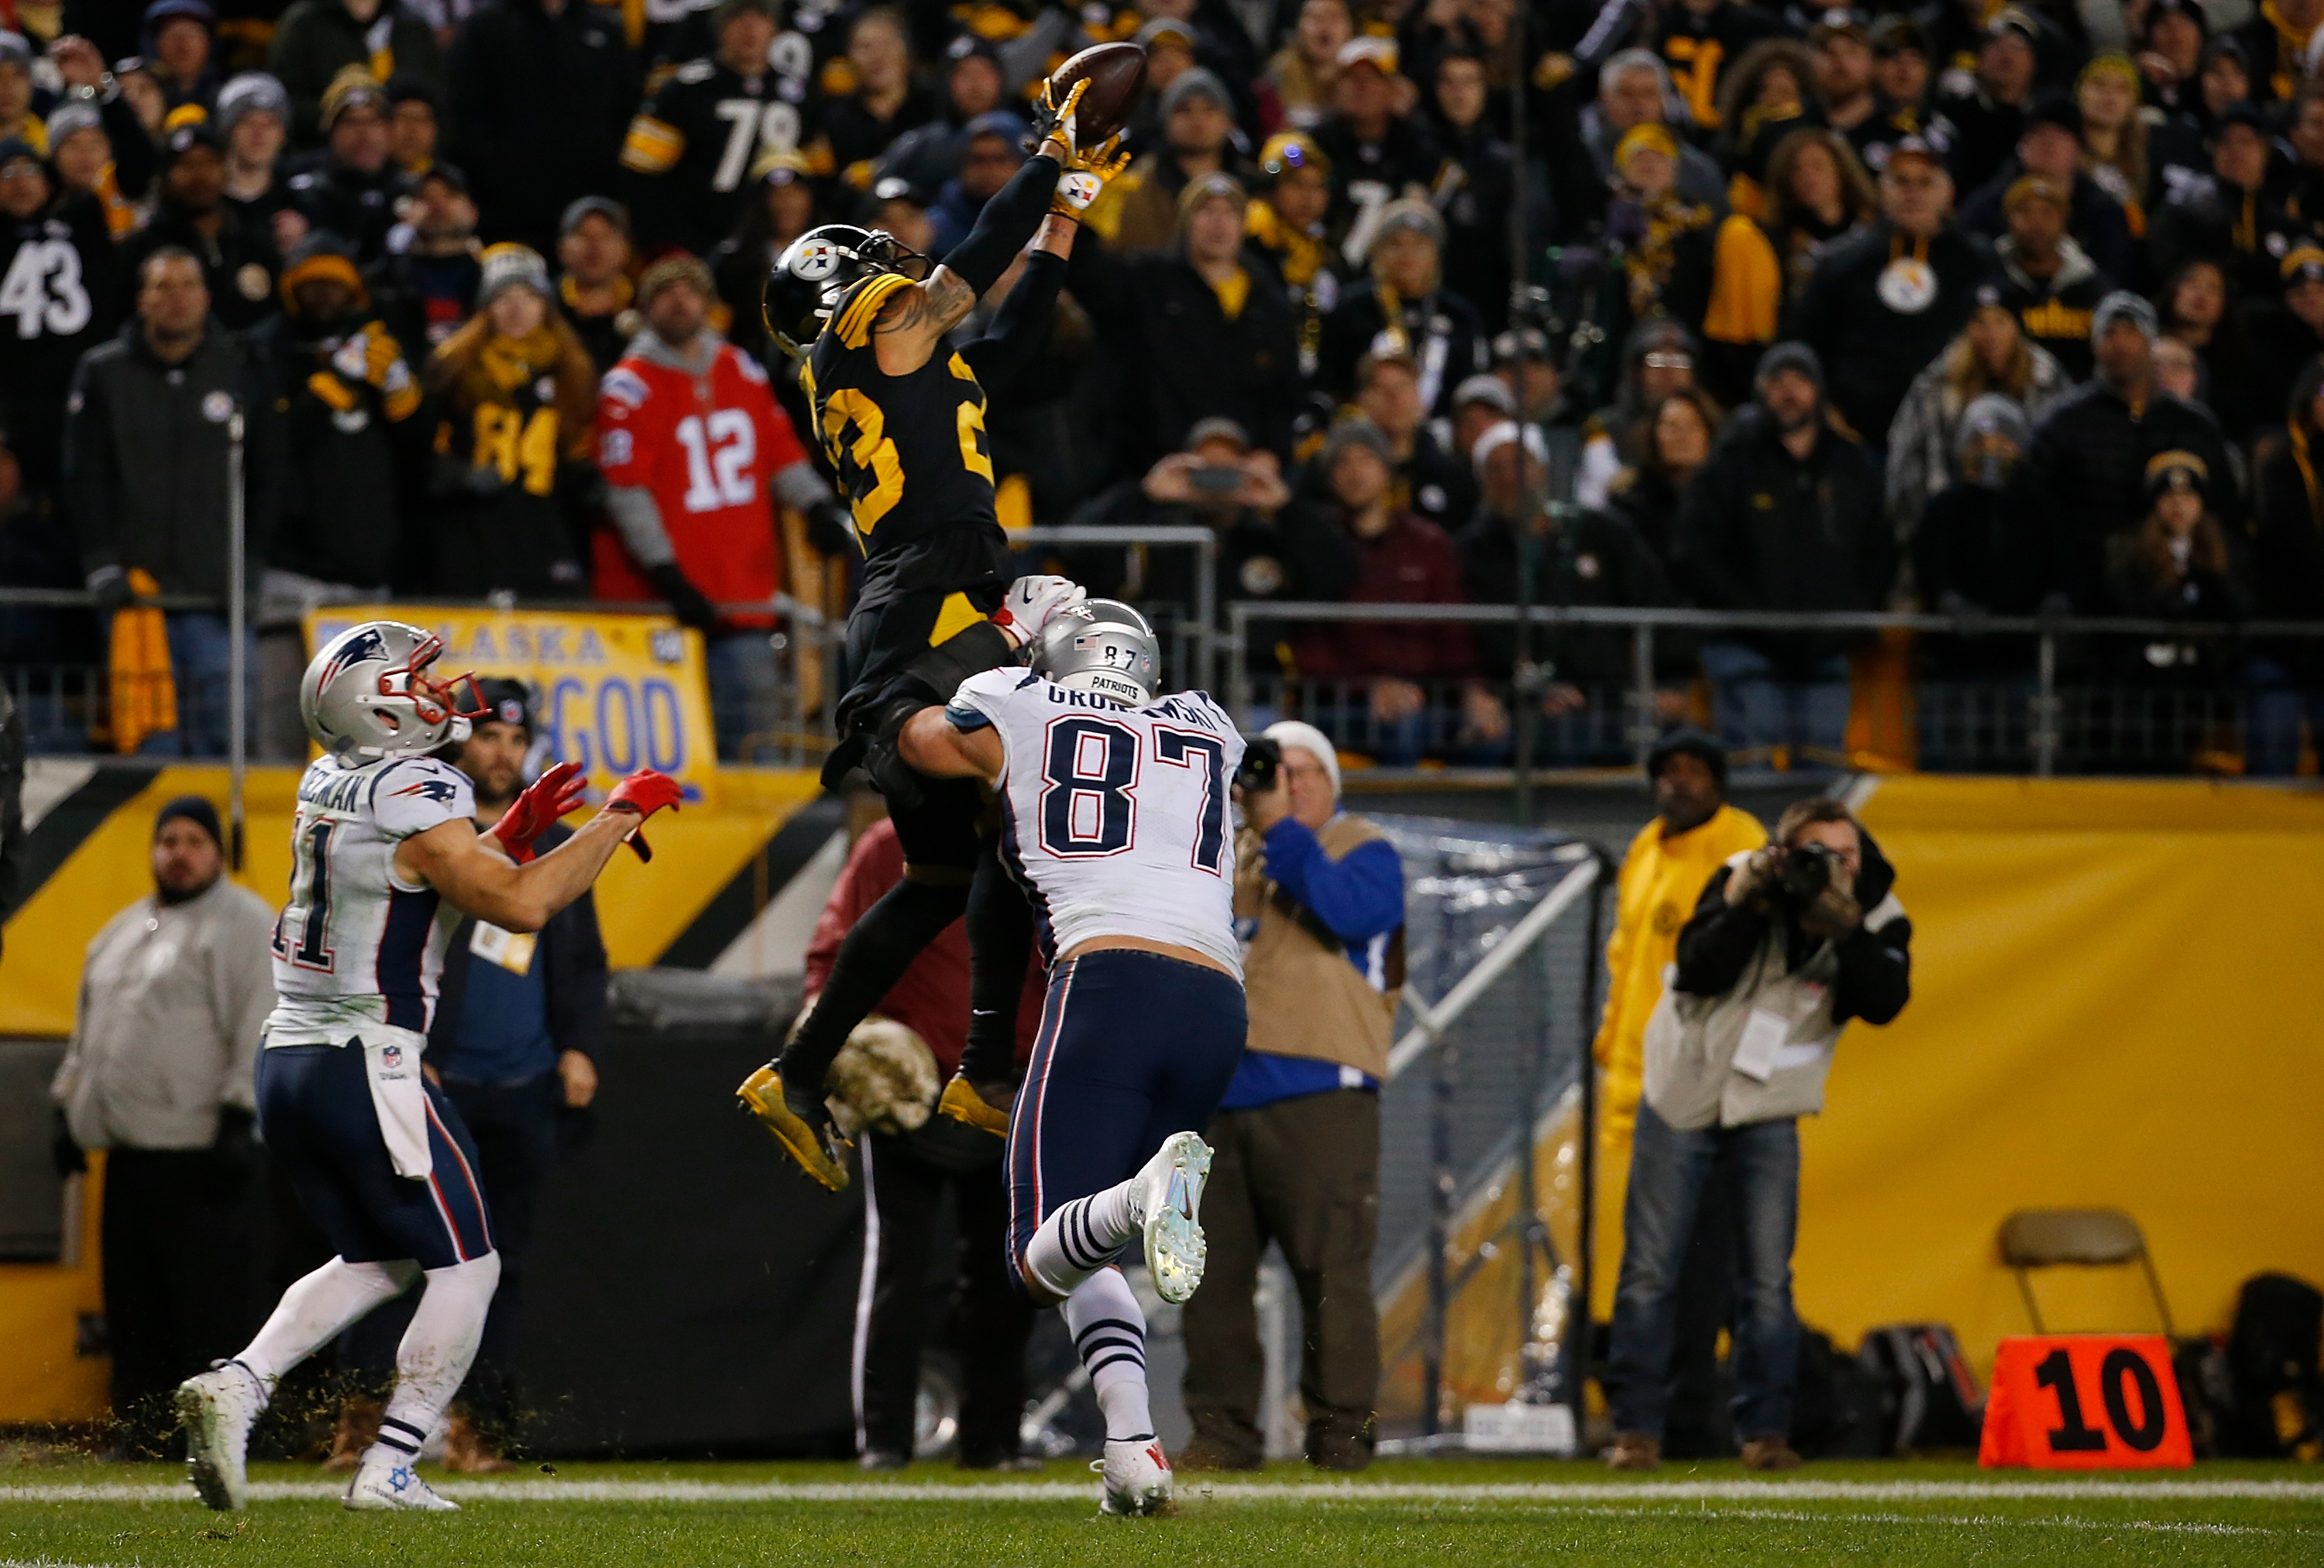 PITTSBURGH, PA - DECEMBER 16: Joe Haden #23 of the Pittsburgh Steelers intercepts a pass intended for Julian Edelman #11 of the New England Patriots in the fourth quarter during the game at Heinz Field on December 16, 2018 in Pittsburgh, Pennsylvania. (Photo by Justin K. Aller/Getty Images)